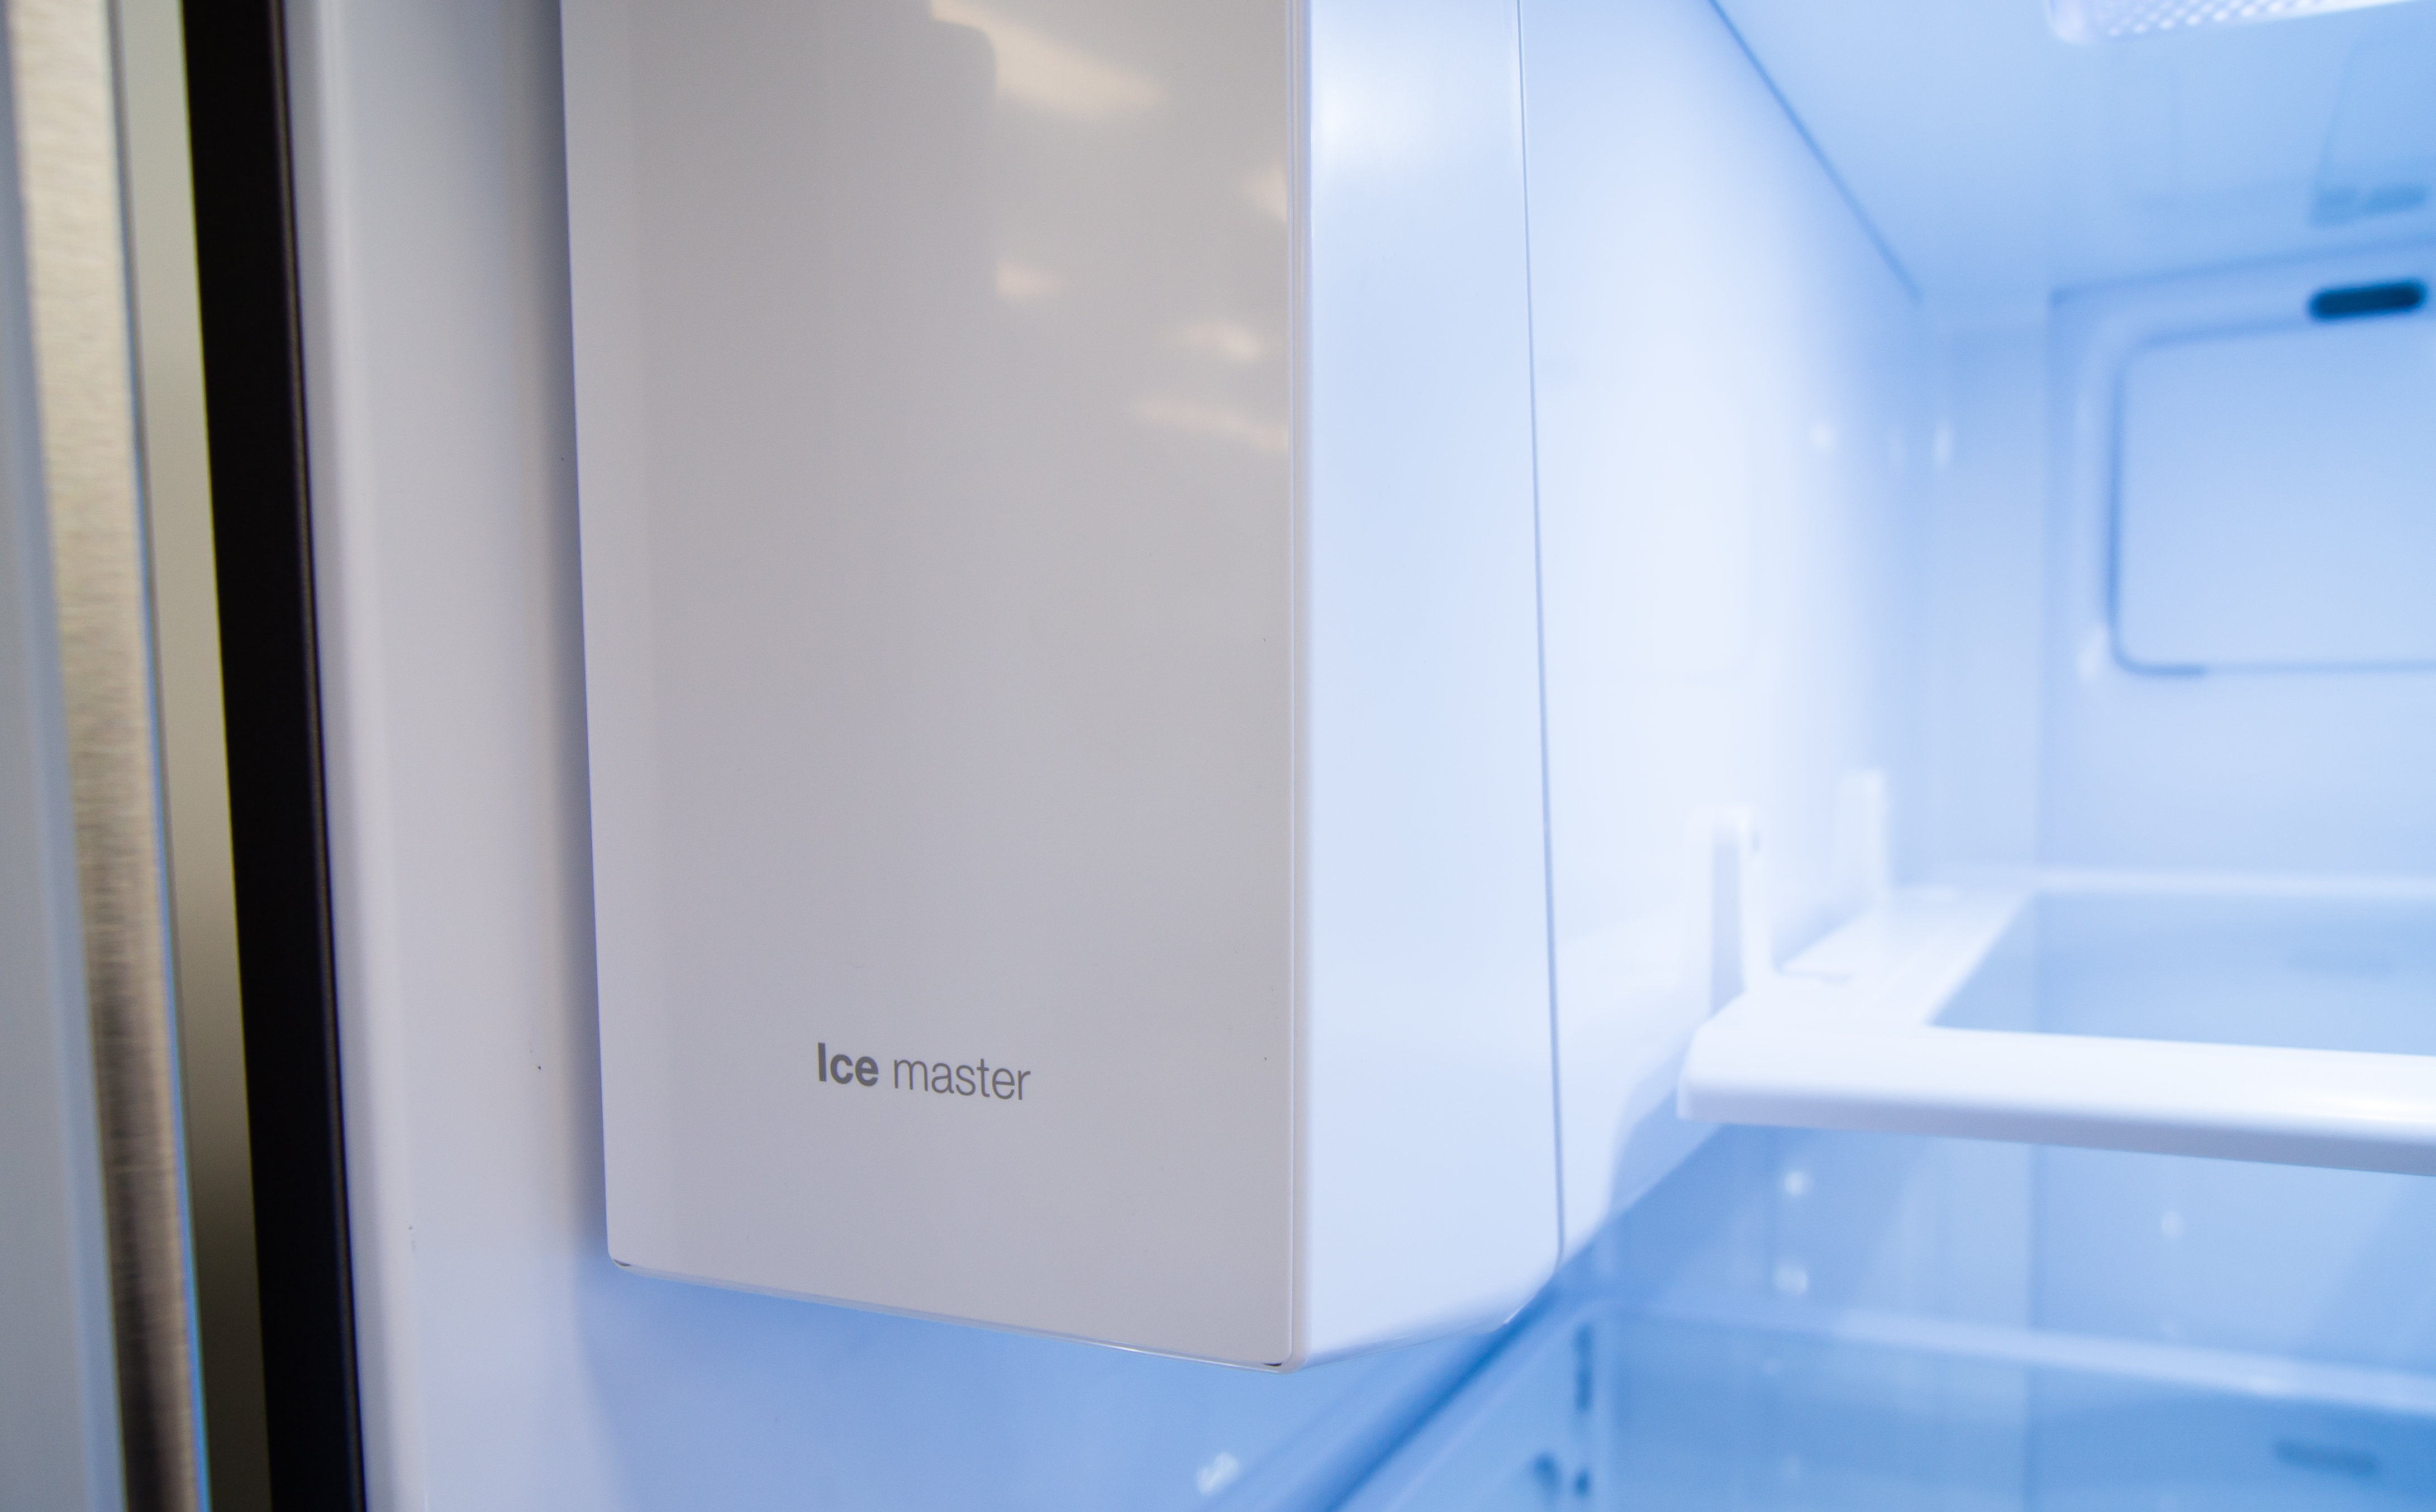 Despite the Samsung RF28HDEDBSR's high price tag, the icemaker is still found inside the main fridge compartment and is a bit cumbersome to remove.